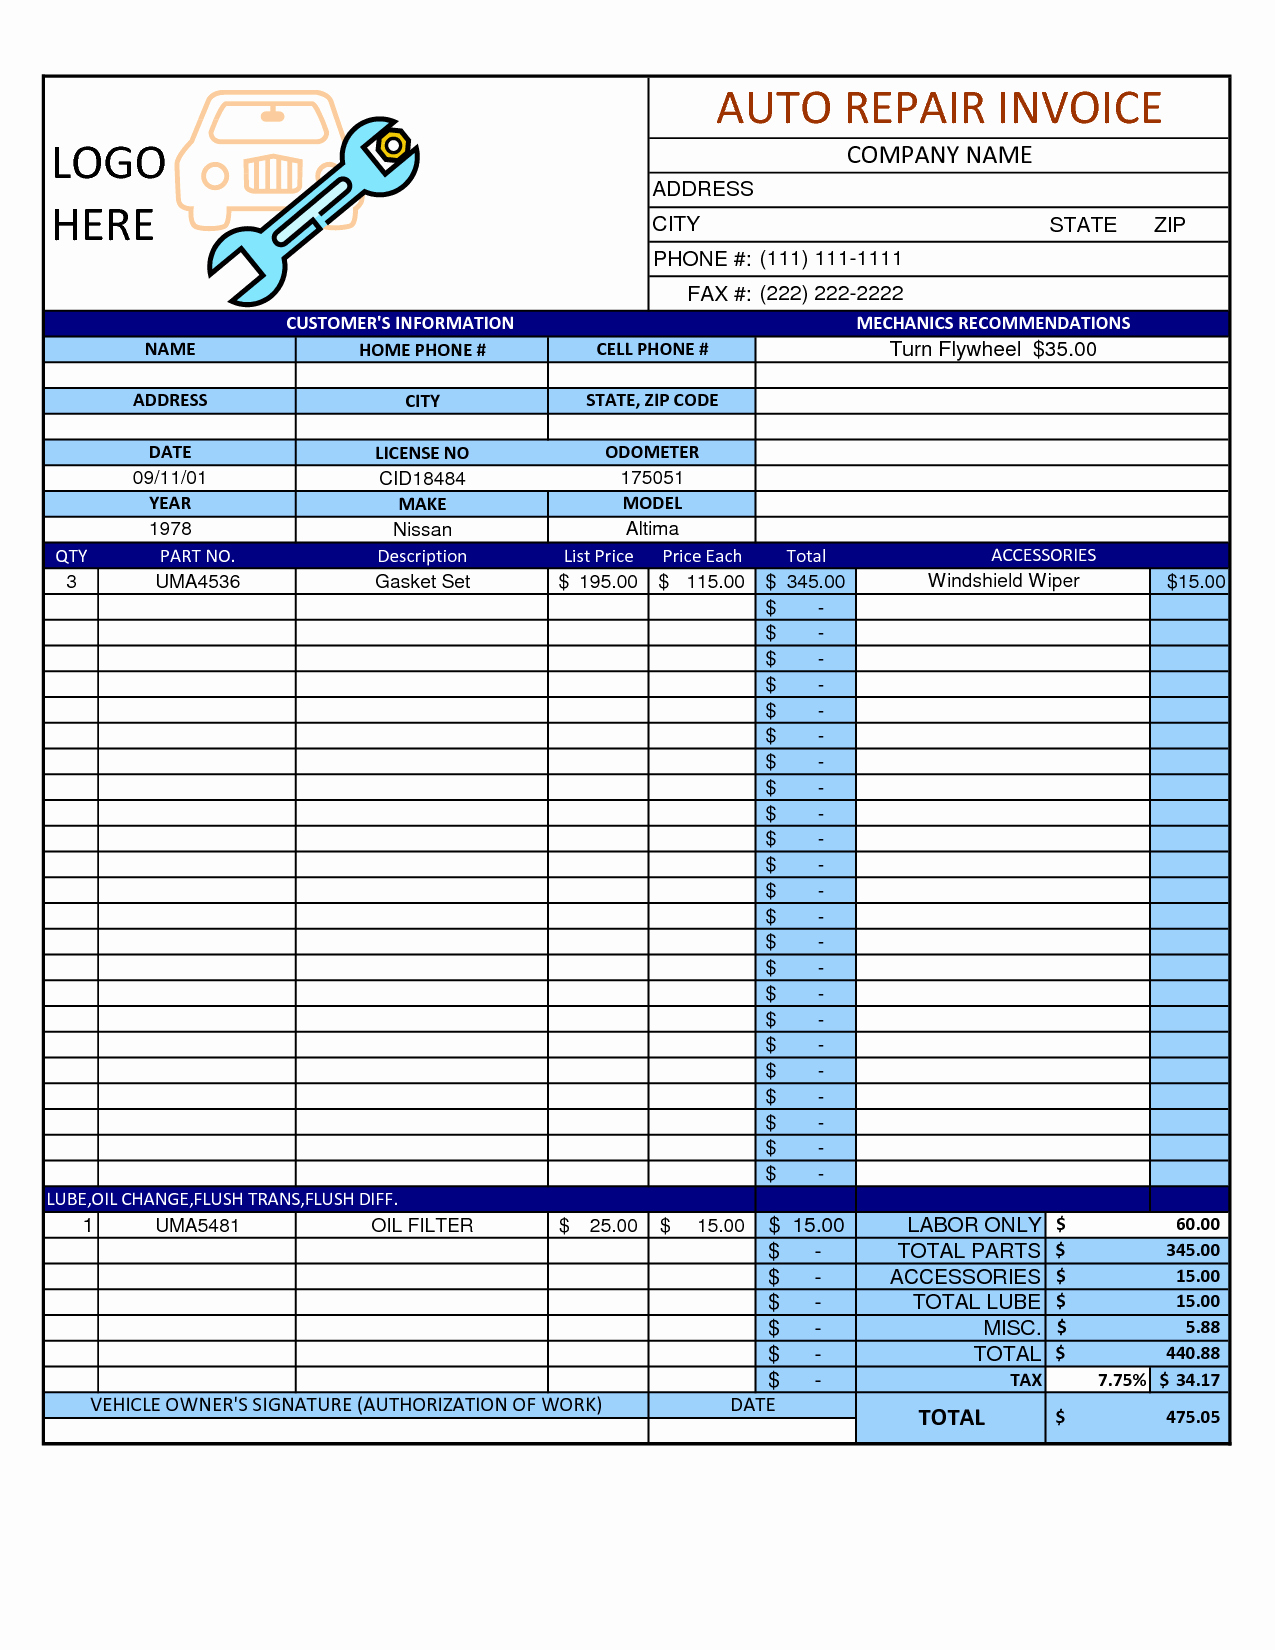 Auto Repair Receipt Template Lovely Mechanic Shop Invoice